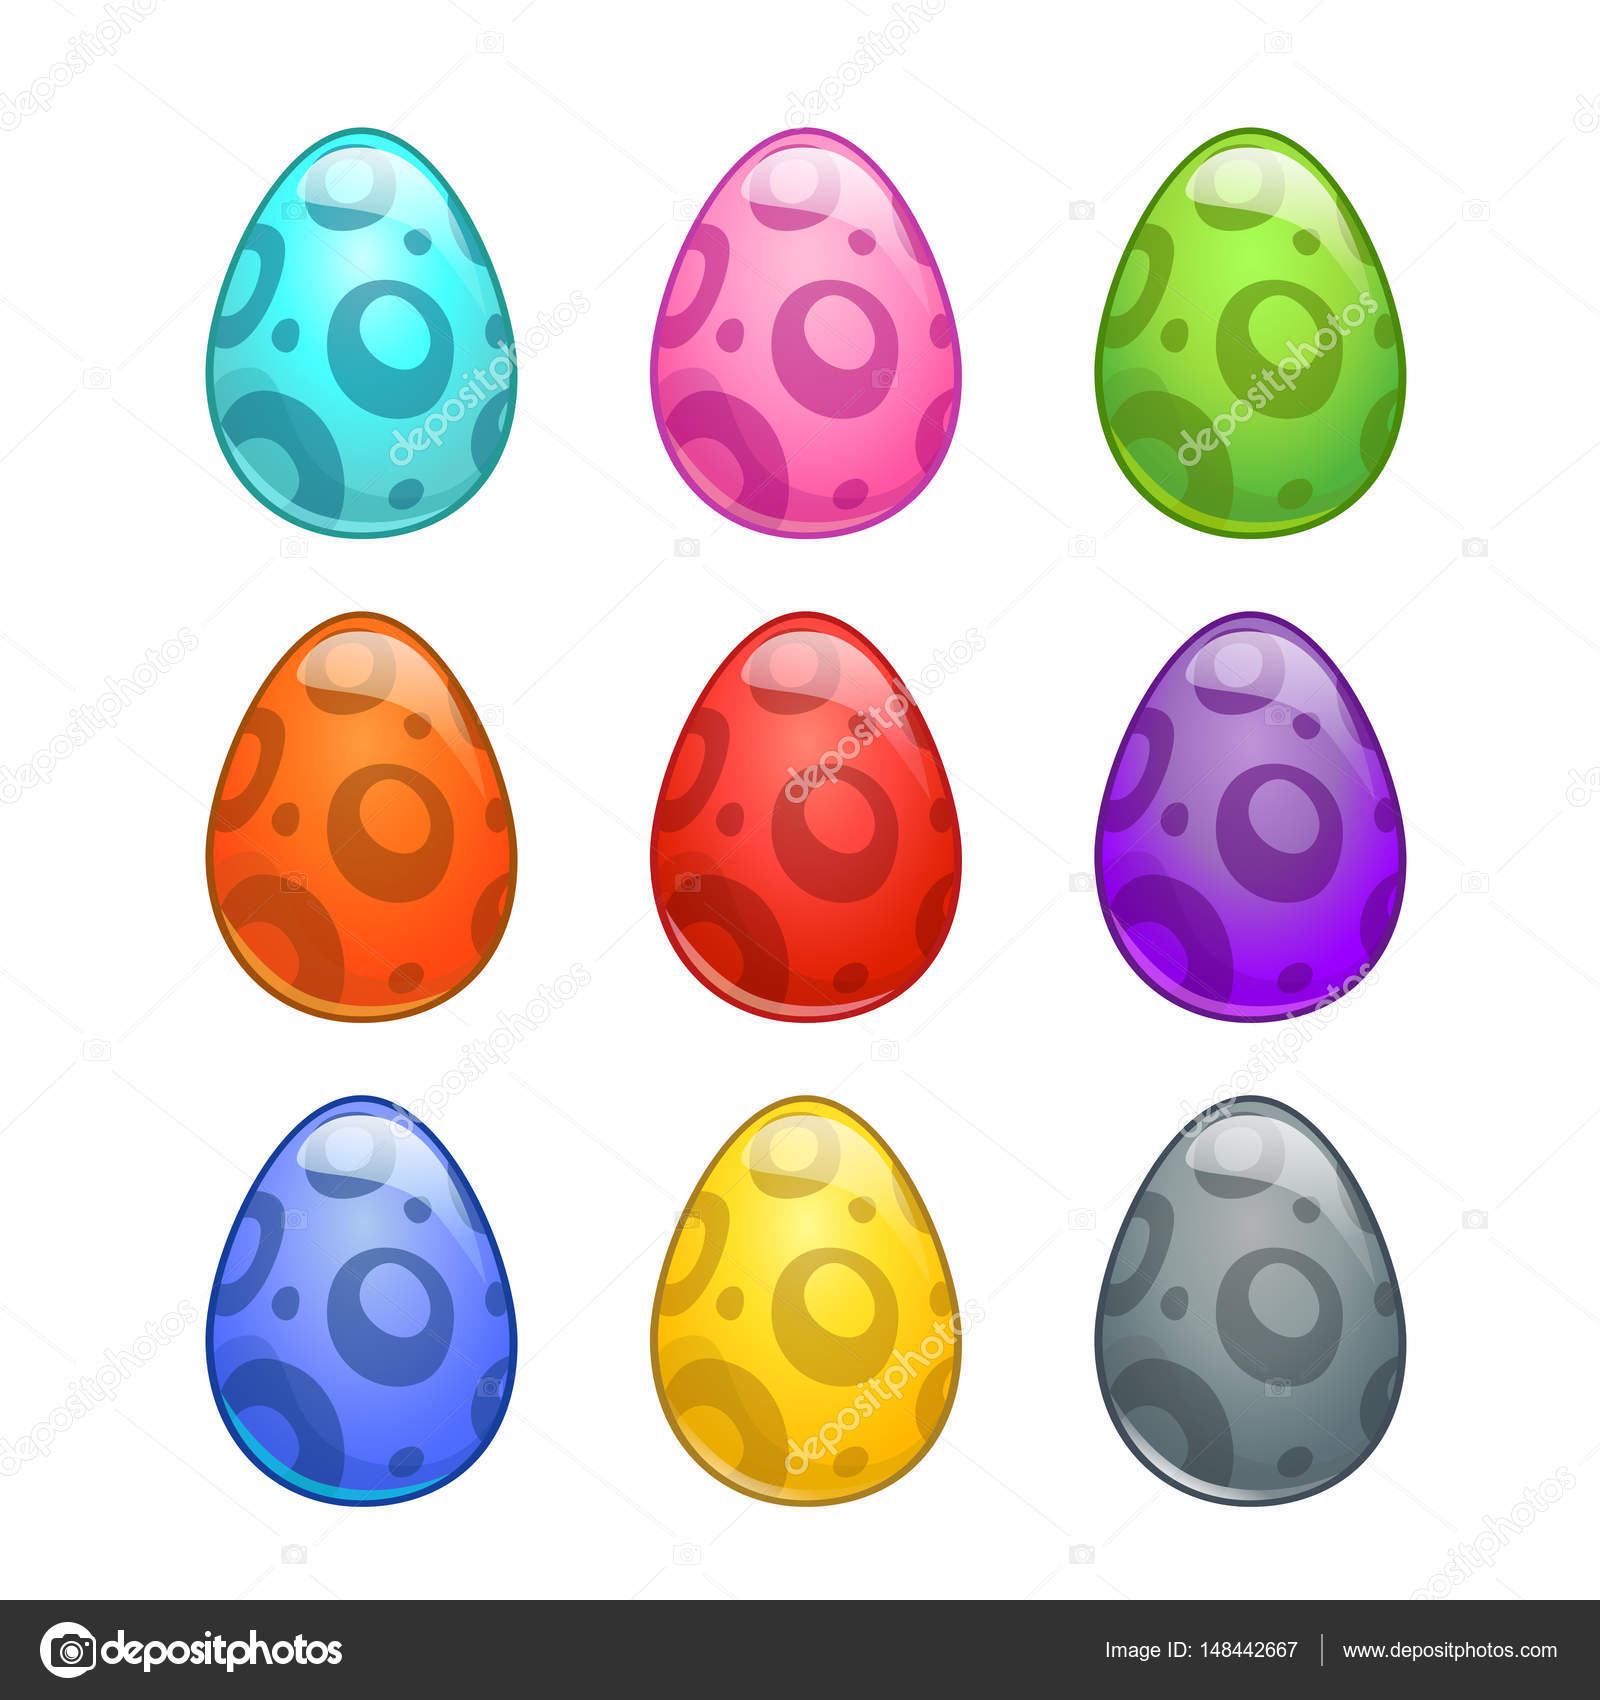 colorful cartoon eggs set u2014 stock vector lilu330 148442667